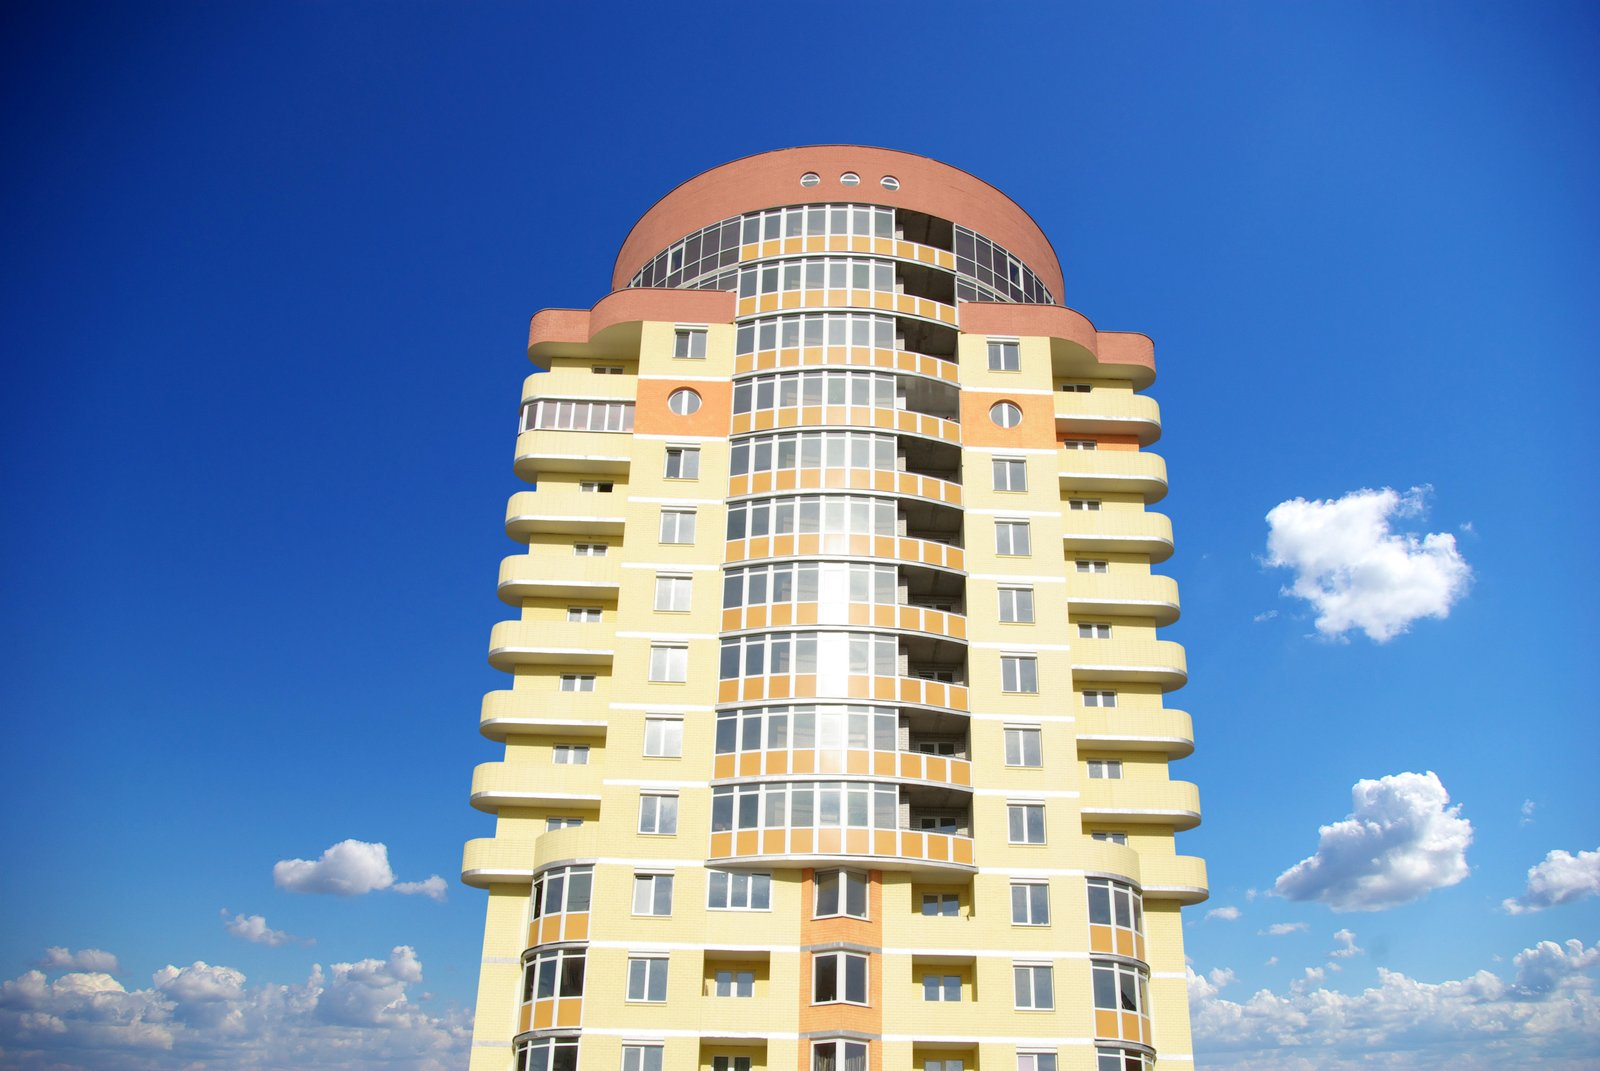 a modern apartment building against the sky